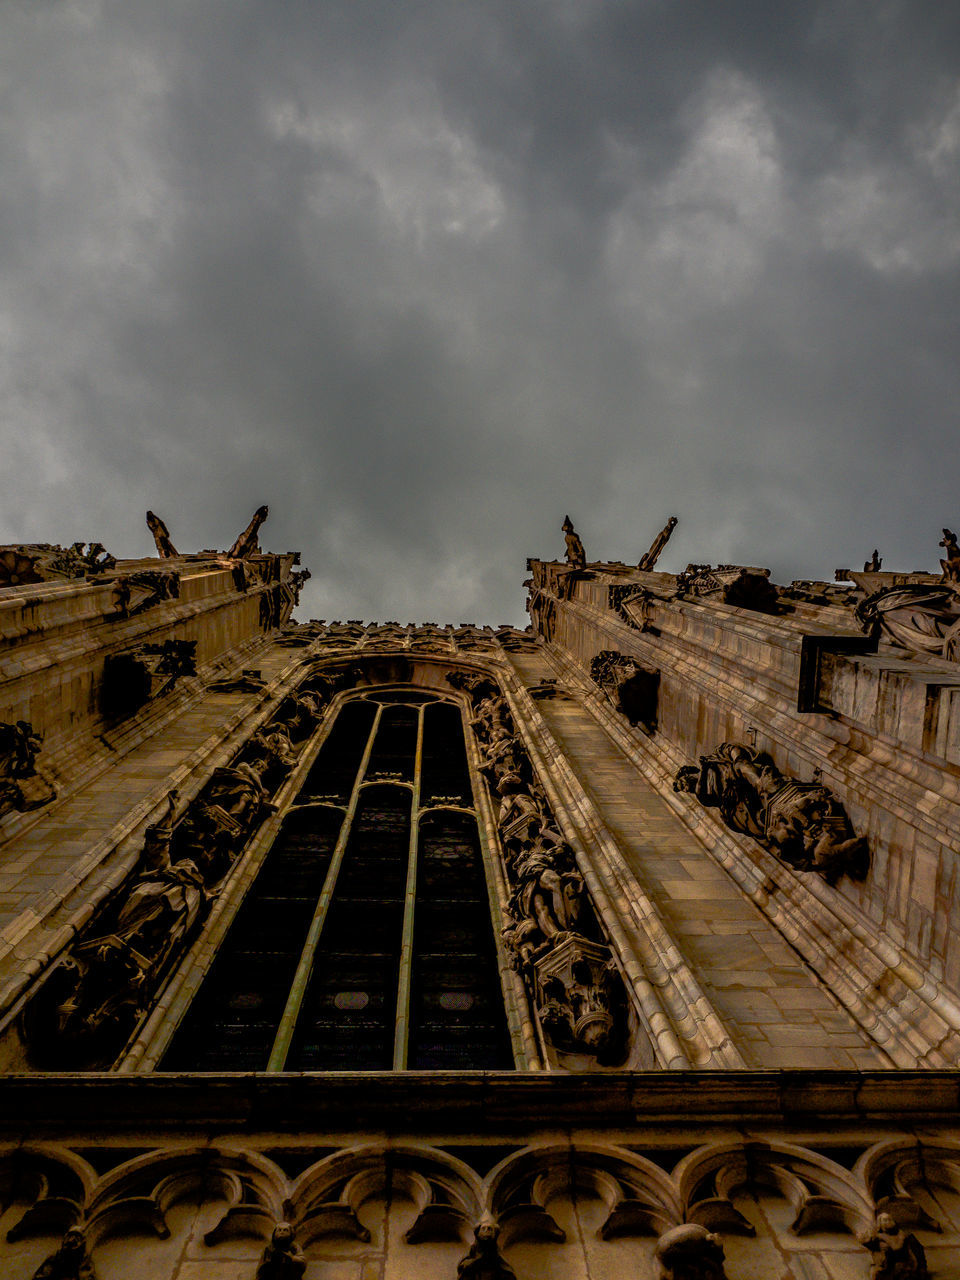 sky, cloud - sky, history, architecture, no people, outdoors, day